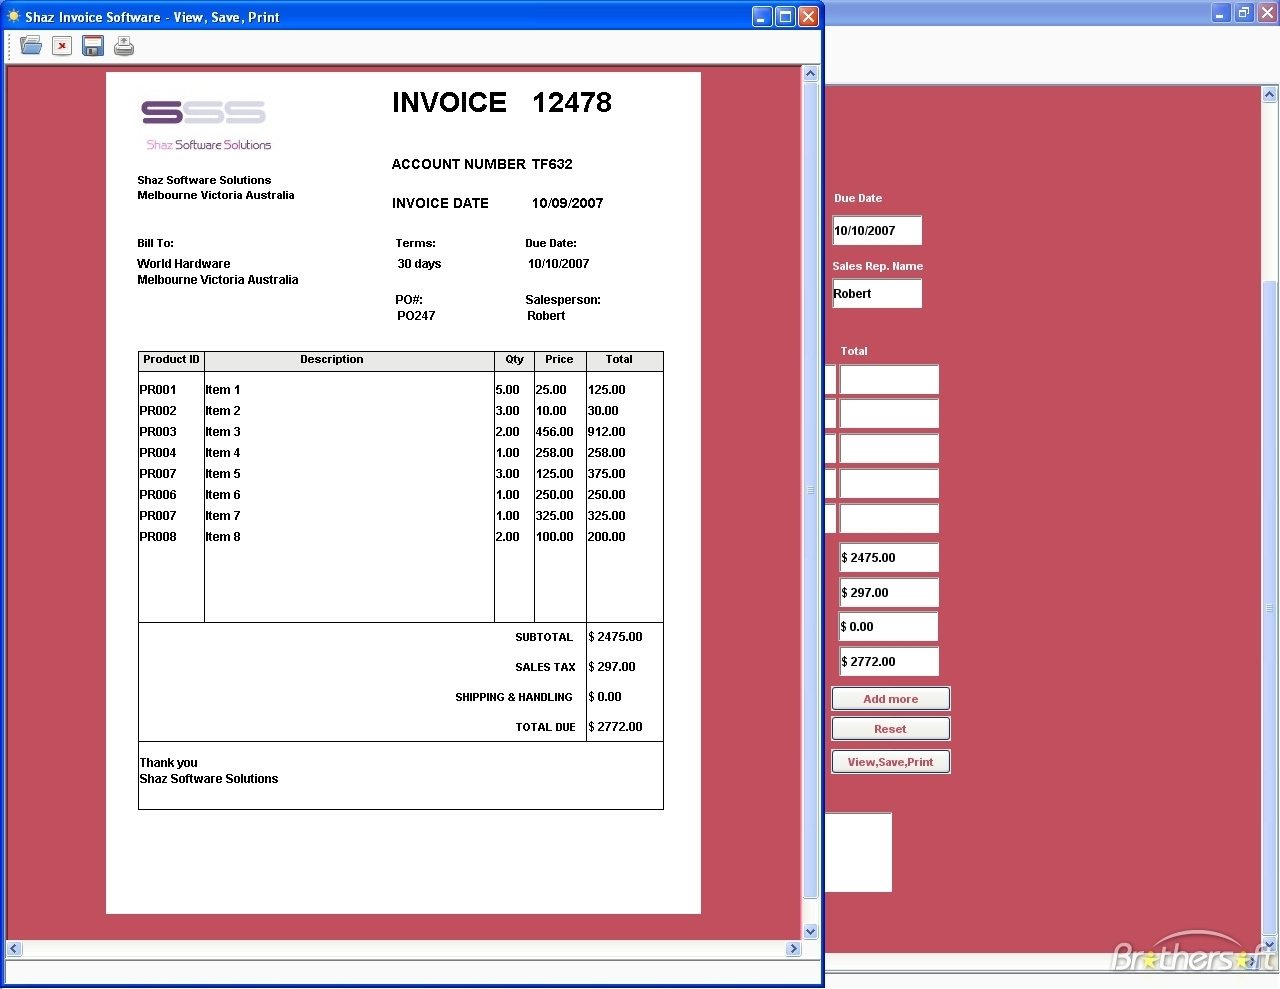 Free Invoice Software Download For Small Business Invoice Template - Free invoice template : free invoice software download